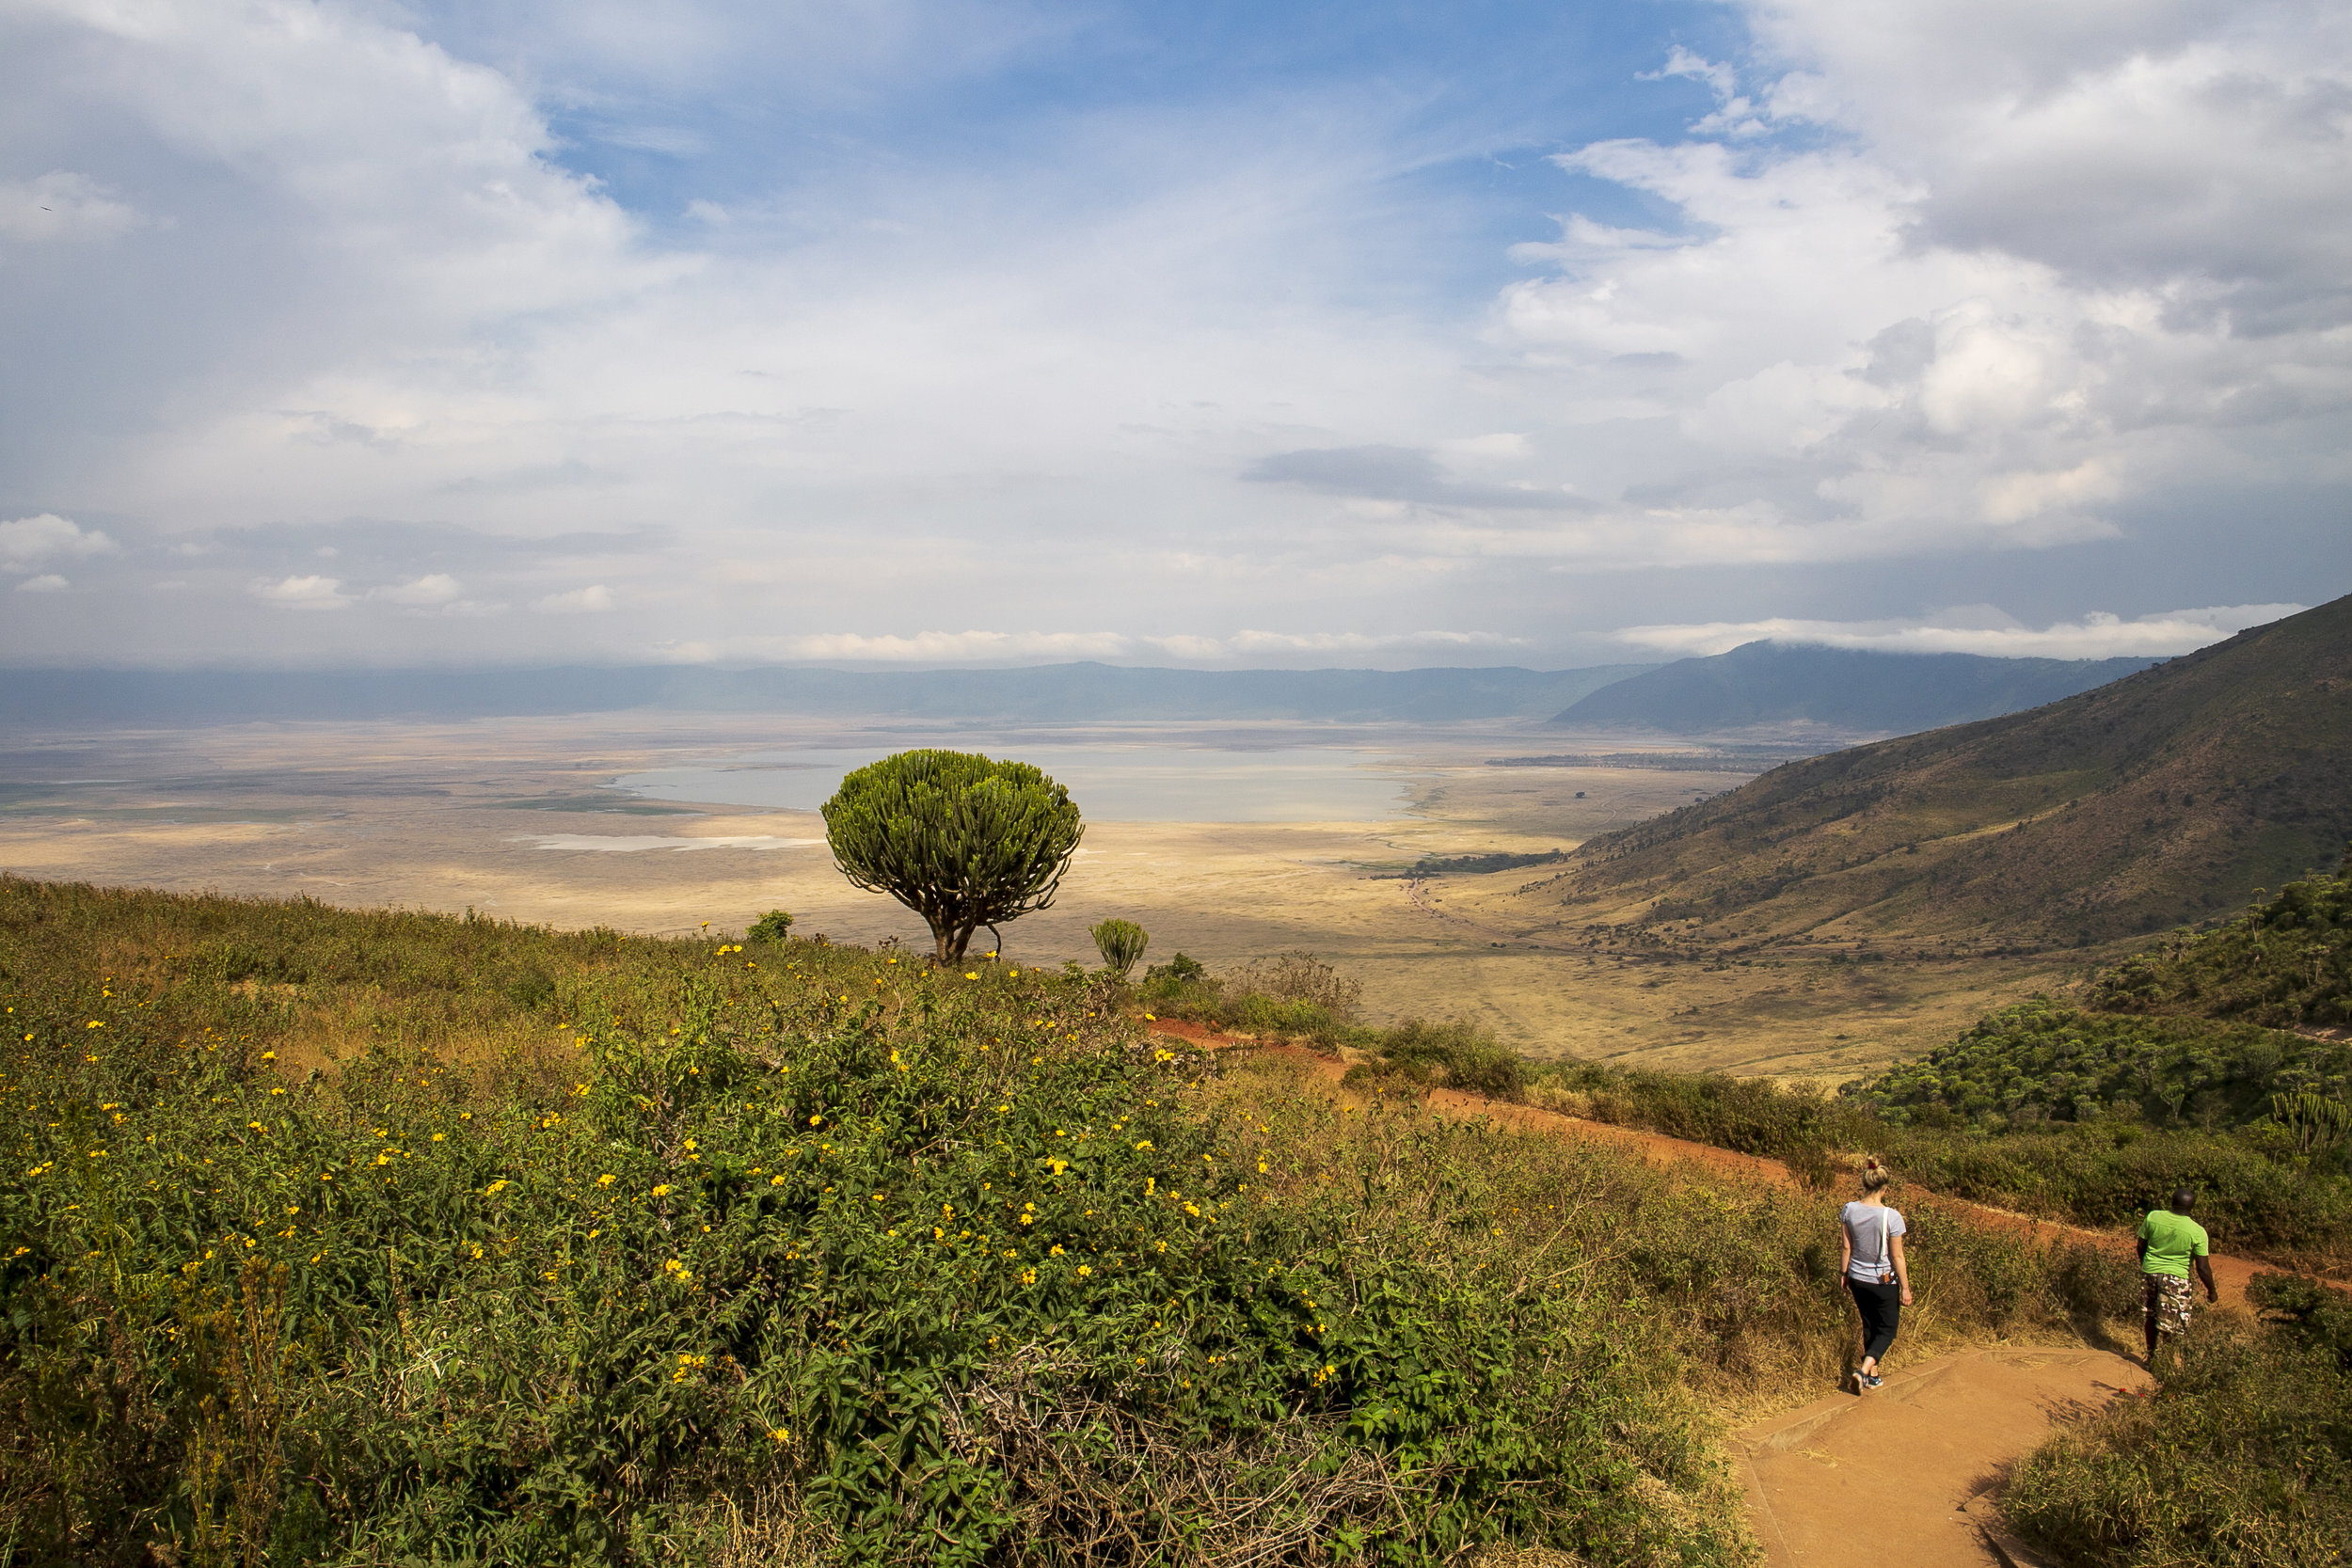 African Adventure - 30 July '18 - Serengeti National Park & Ngorongoro (Crater) Conservation Area - 003.JPG